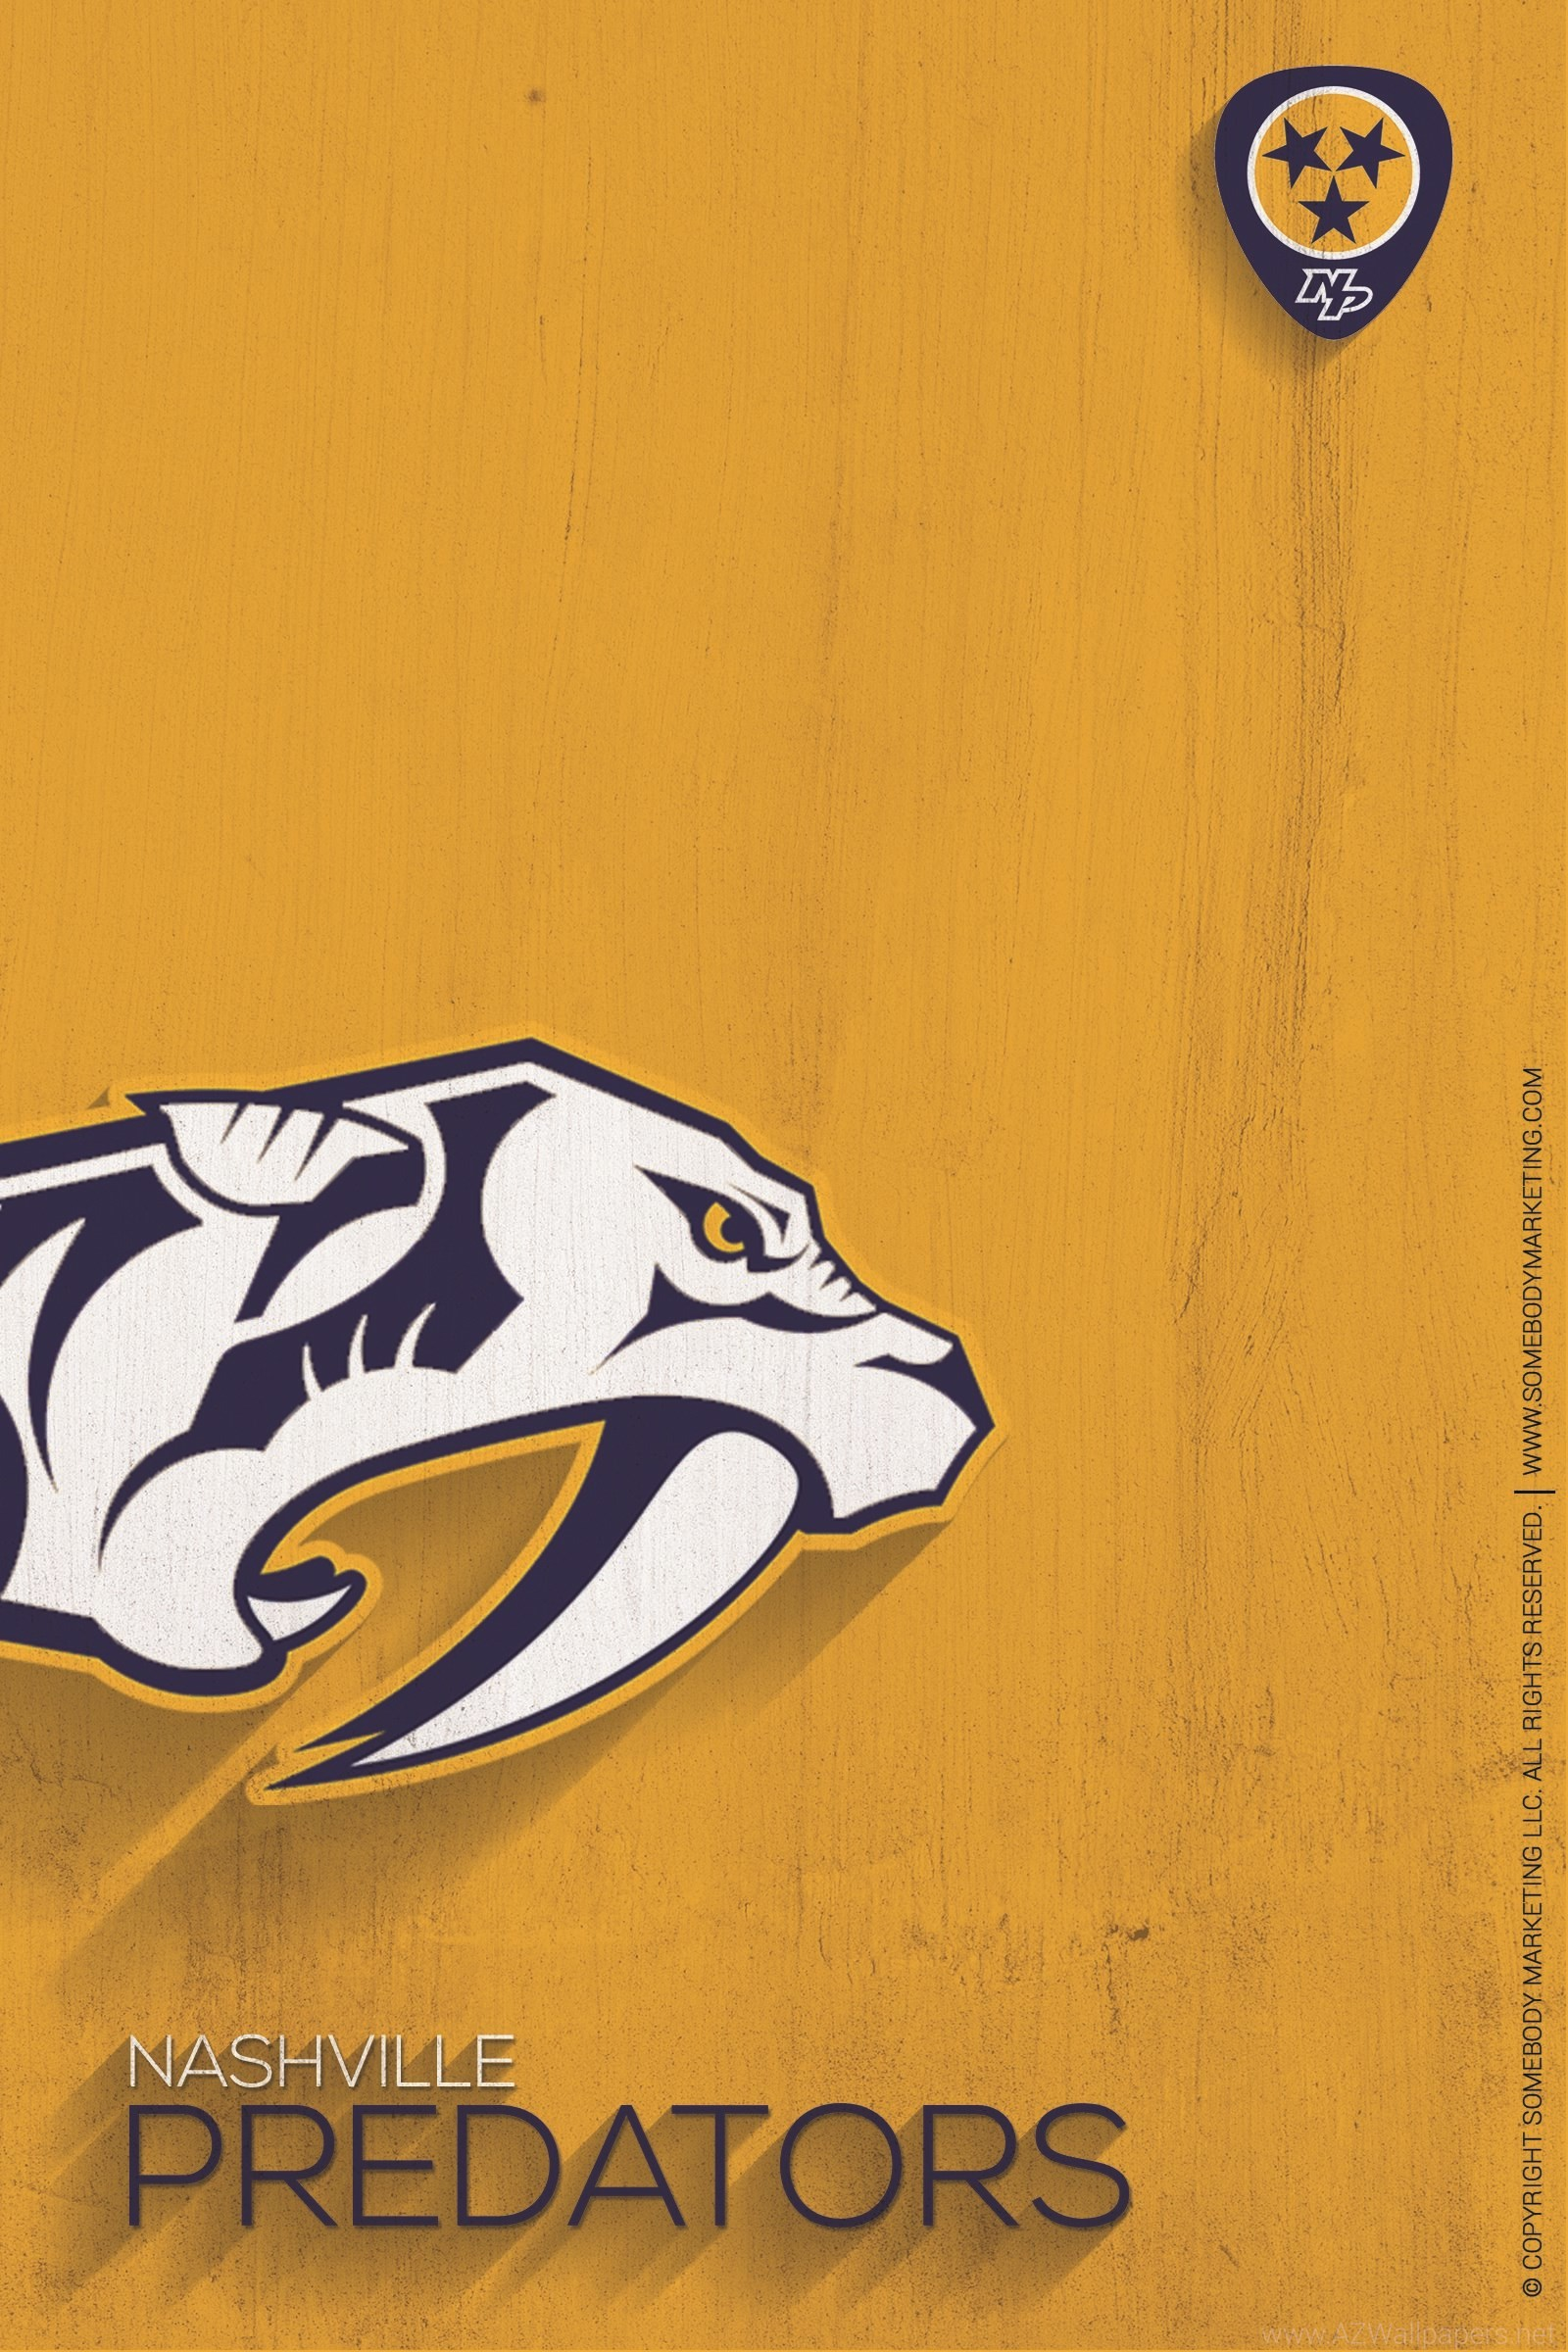 Pictures of nashville predators